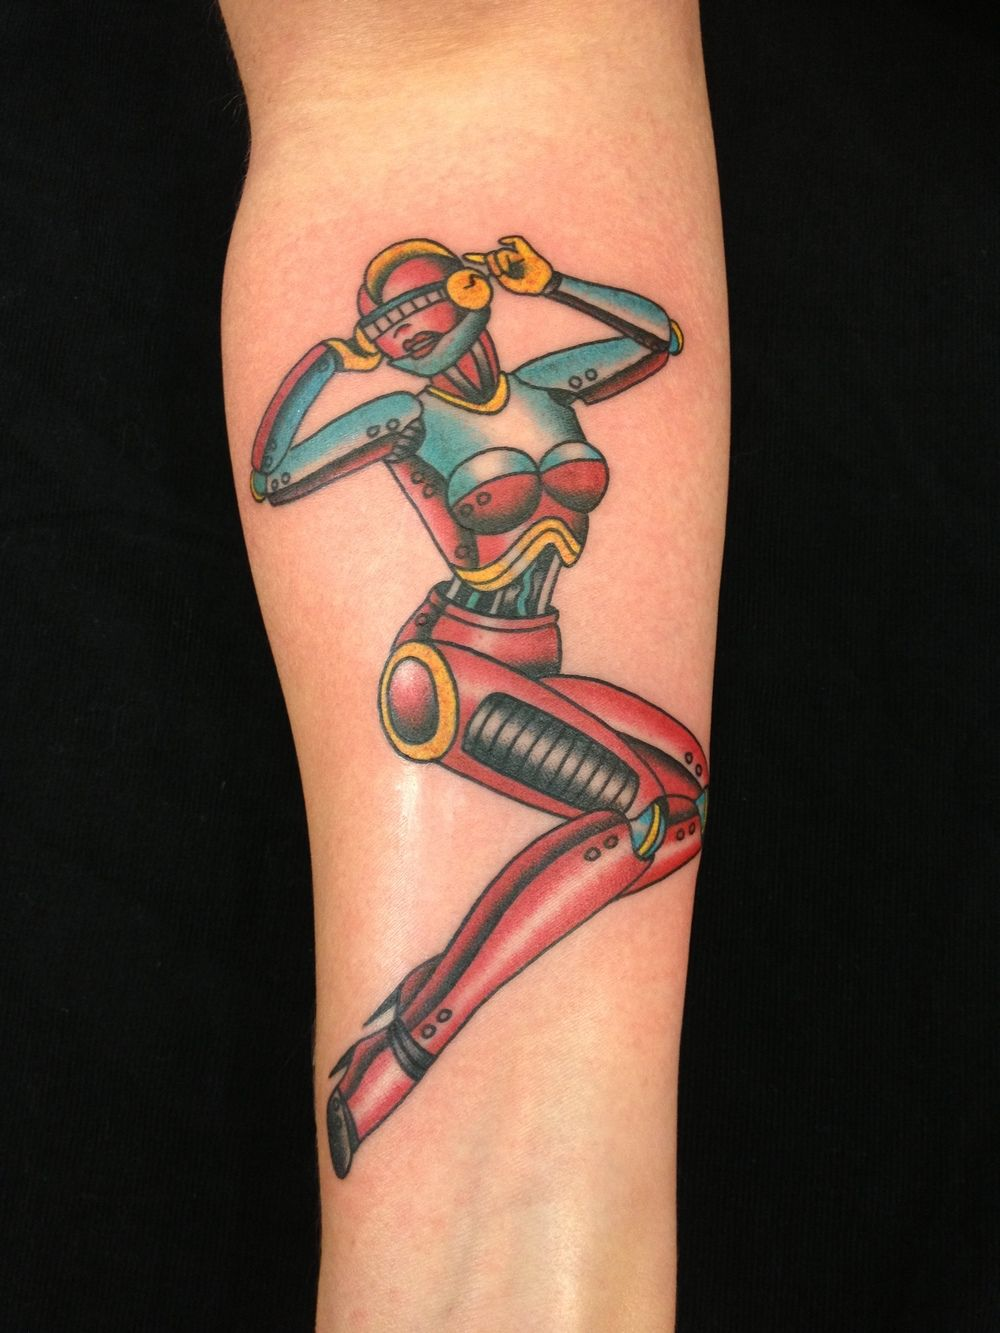 Fat Rams Tattoo Parlor Melissa Baker Pin Up Robot